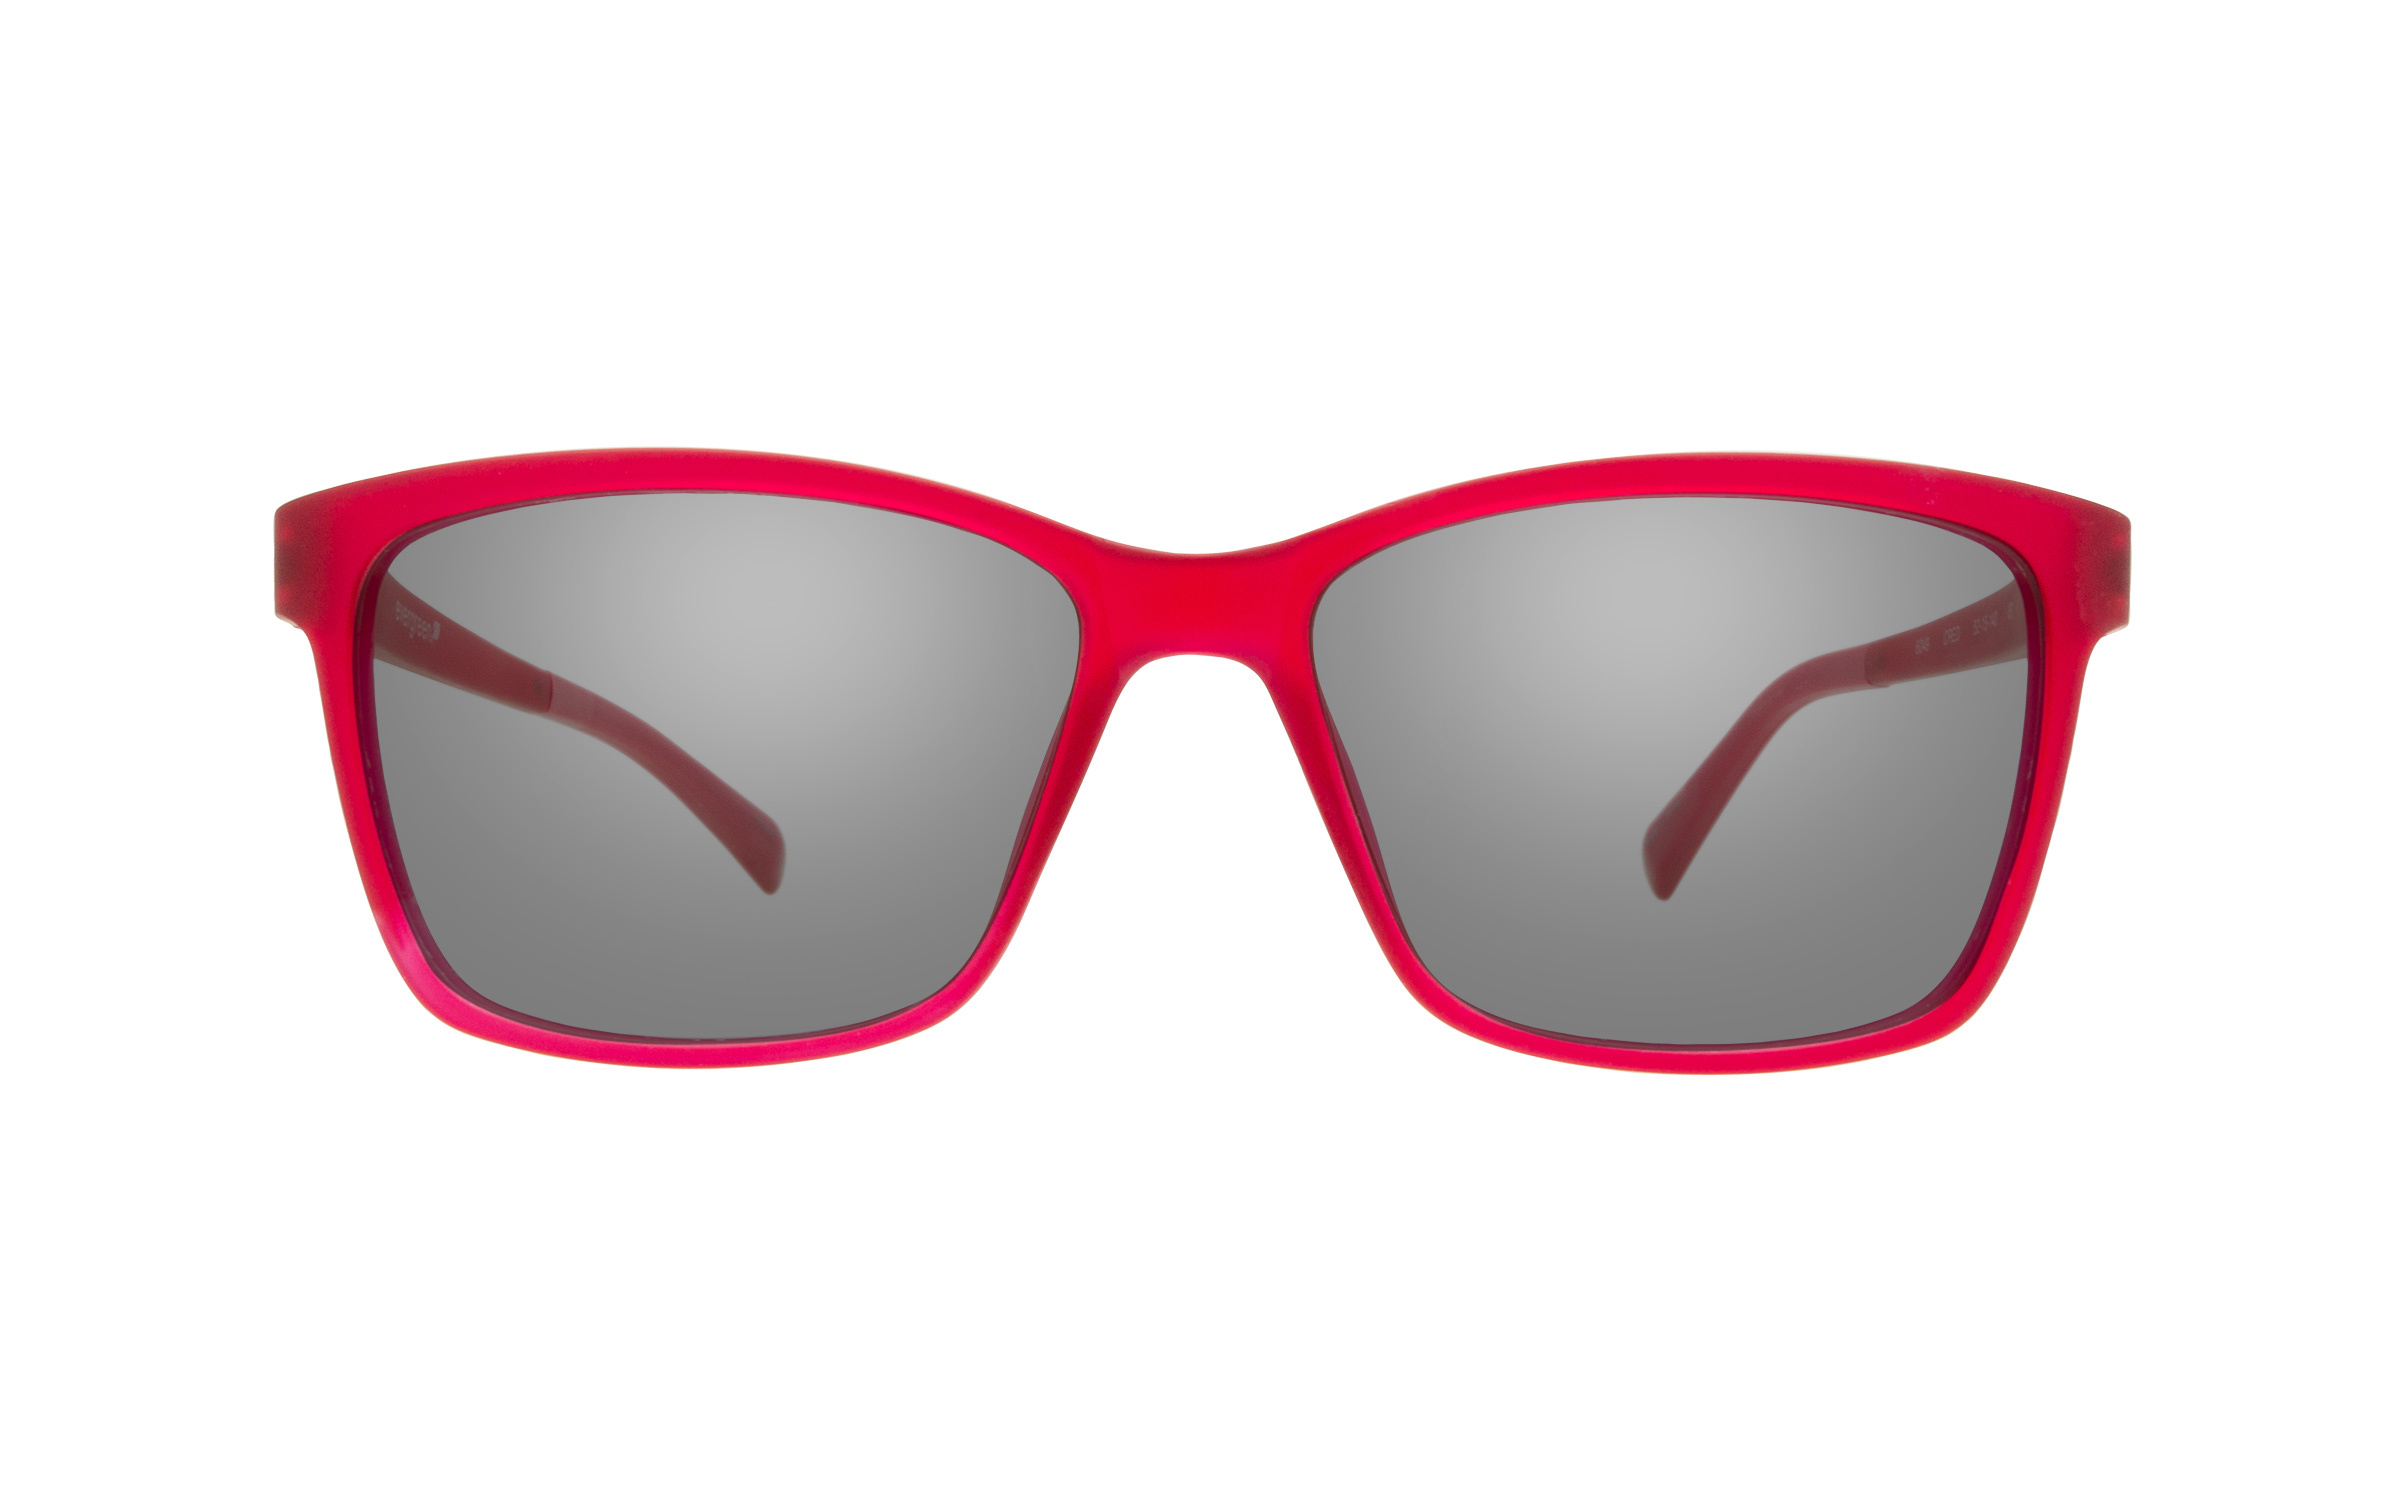 shop confidently for evergreen 6049 52 glasses with